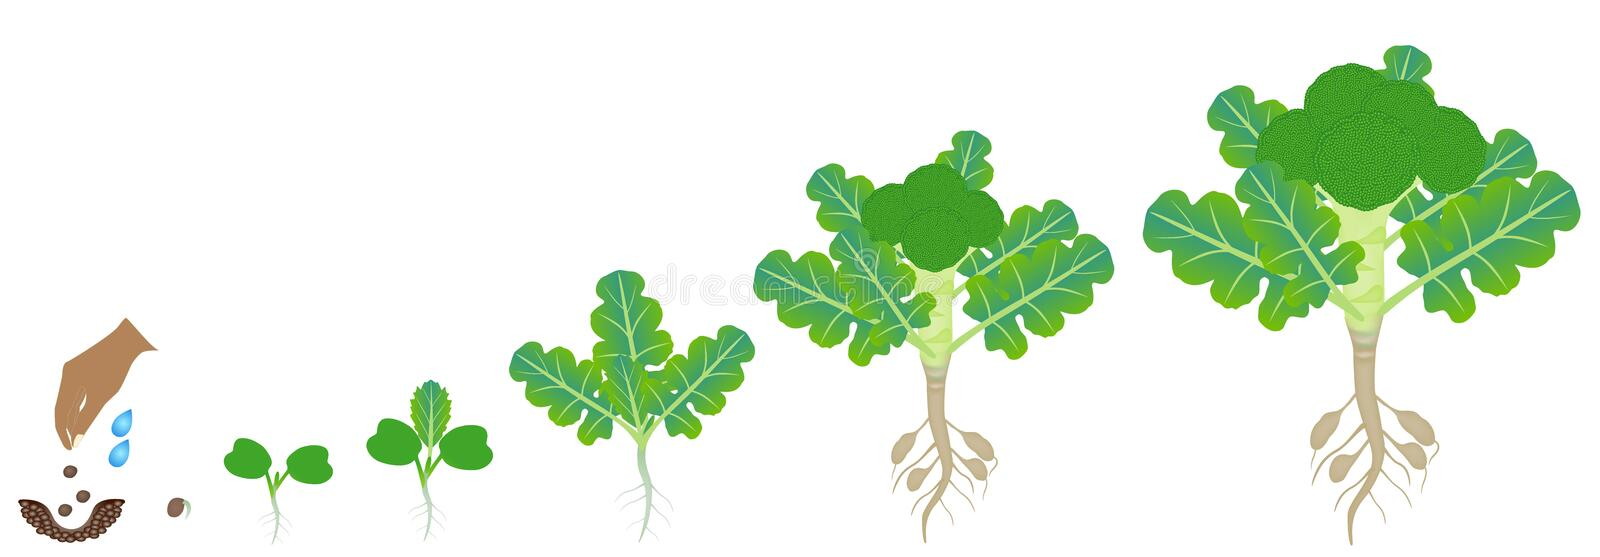 Cycle of growth of broccoli plant on a white background. stock illustration